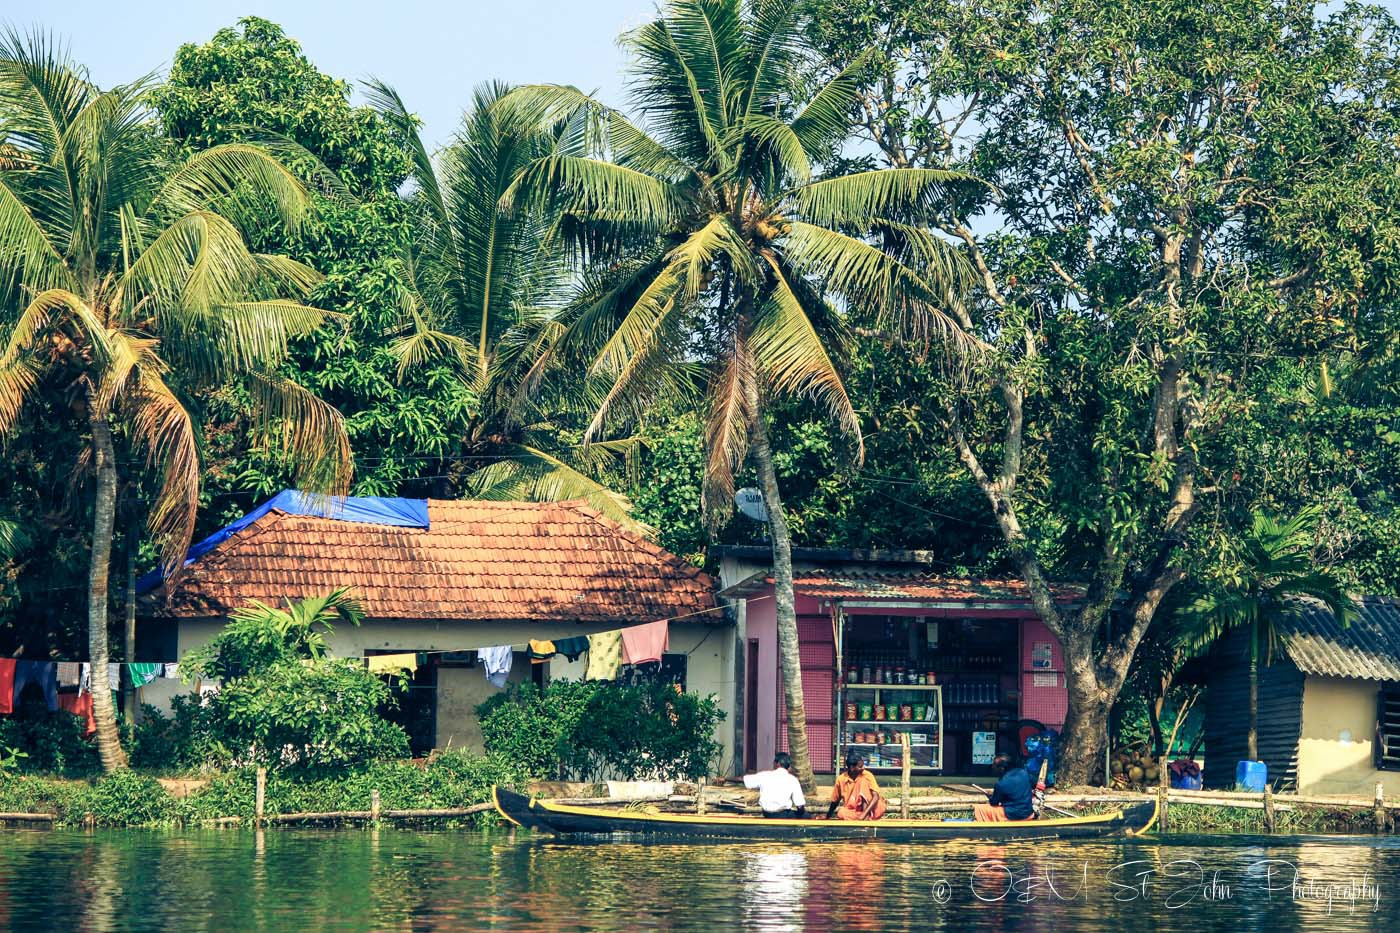 Shop on the shores of Kerala Backwaters. India